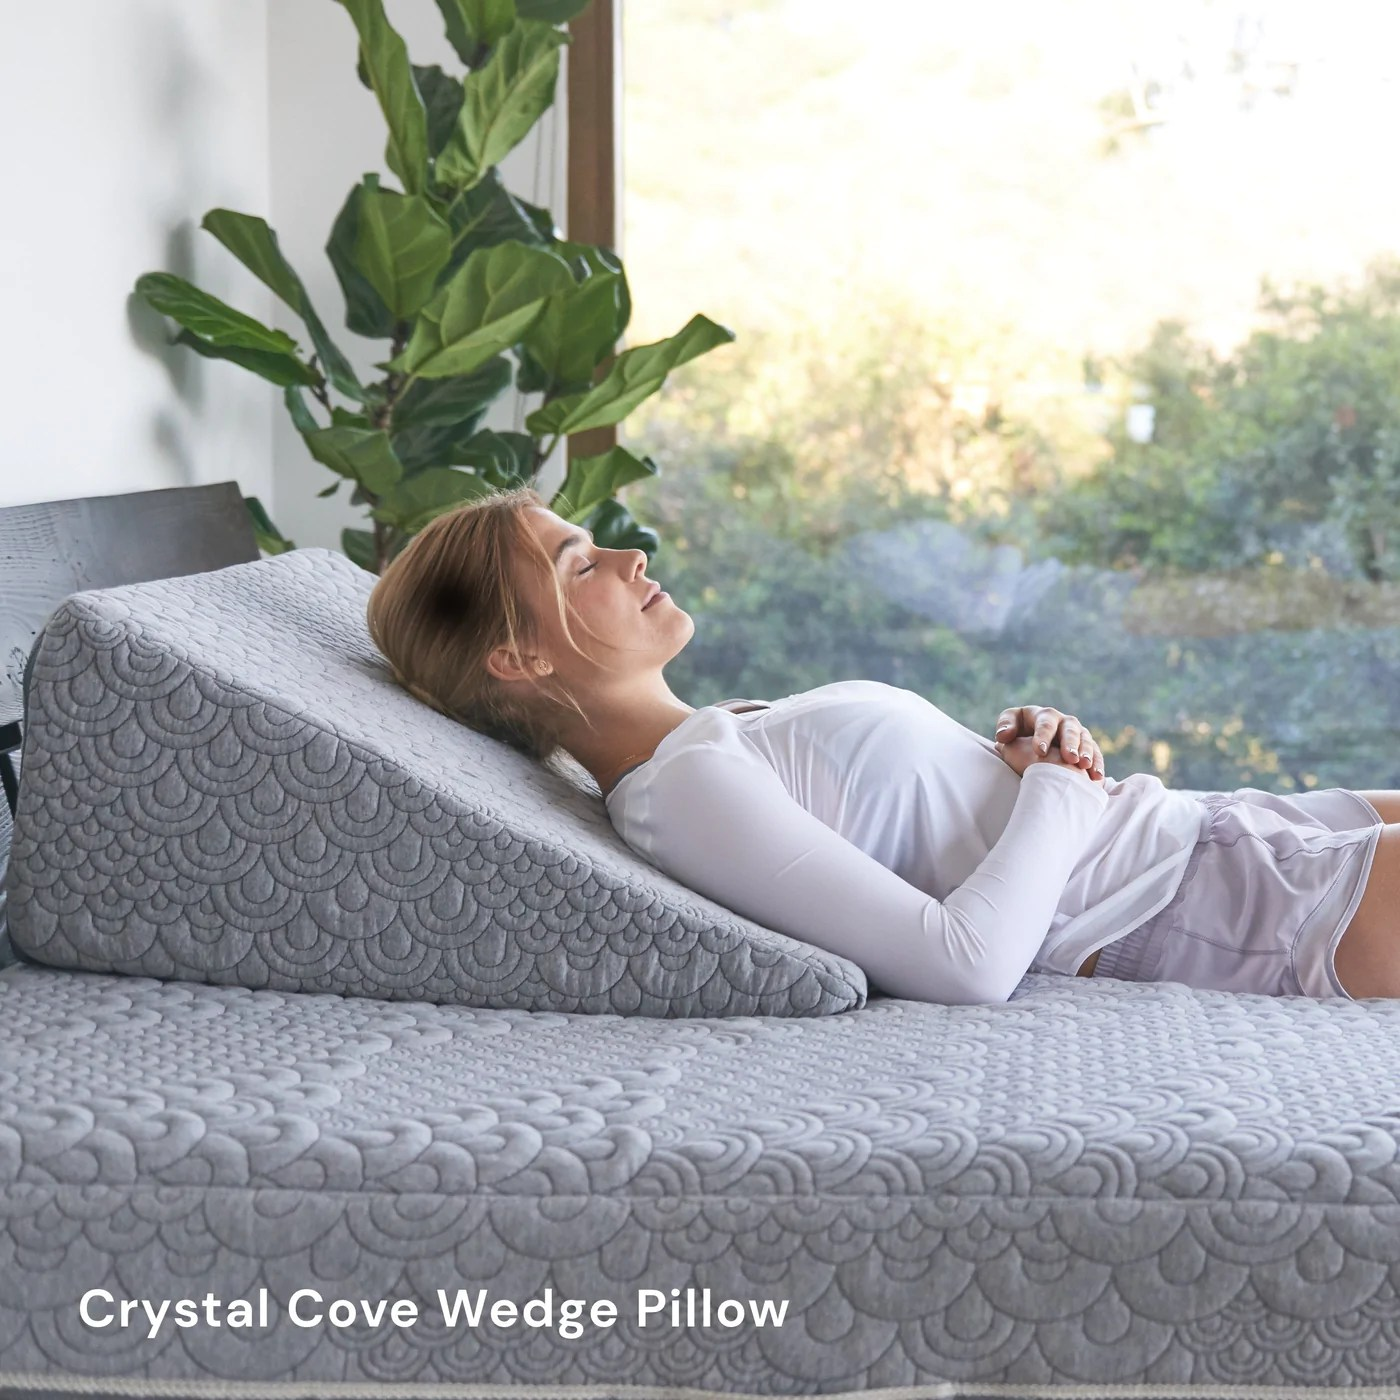 wedge pillow covers wedge pillow